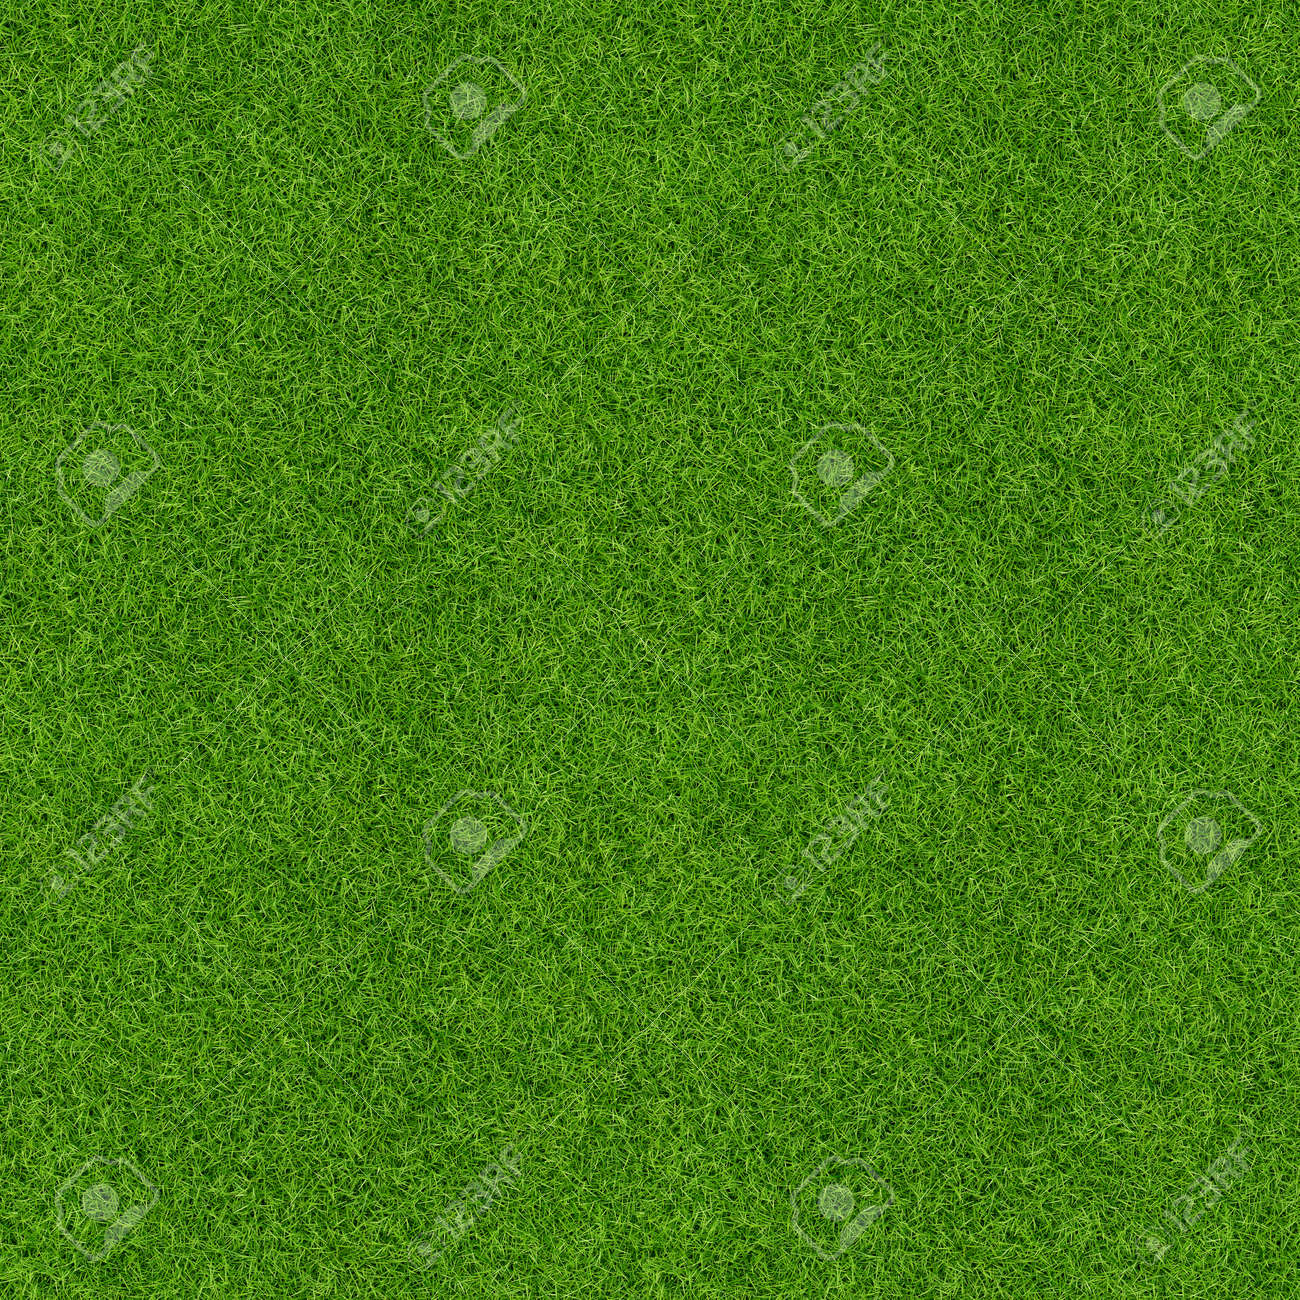 Green grass pattern and texture for background. Close-up image. - 121373189